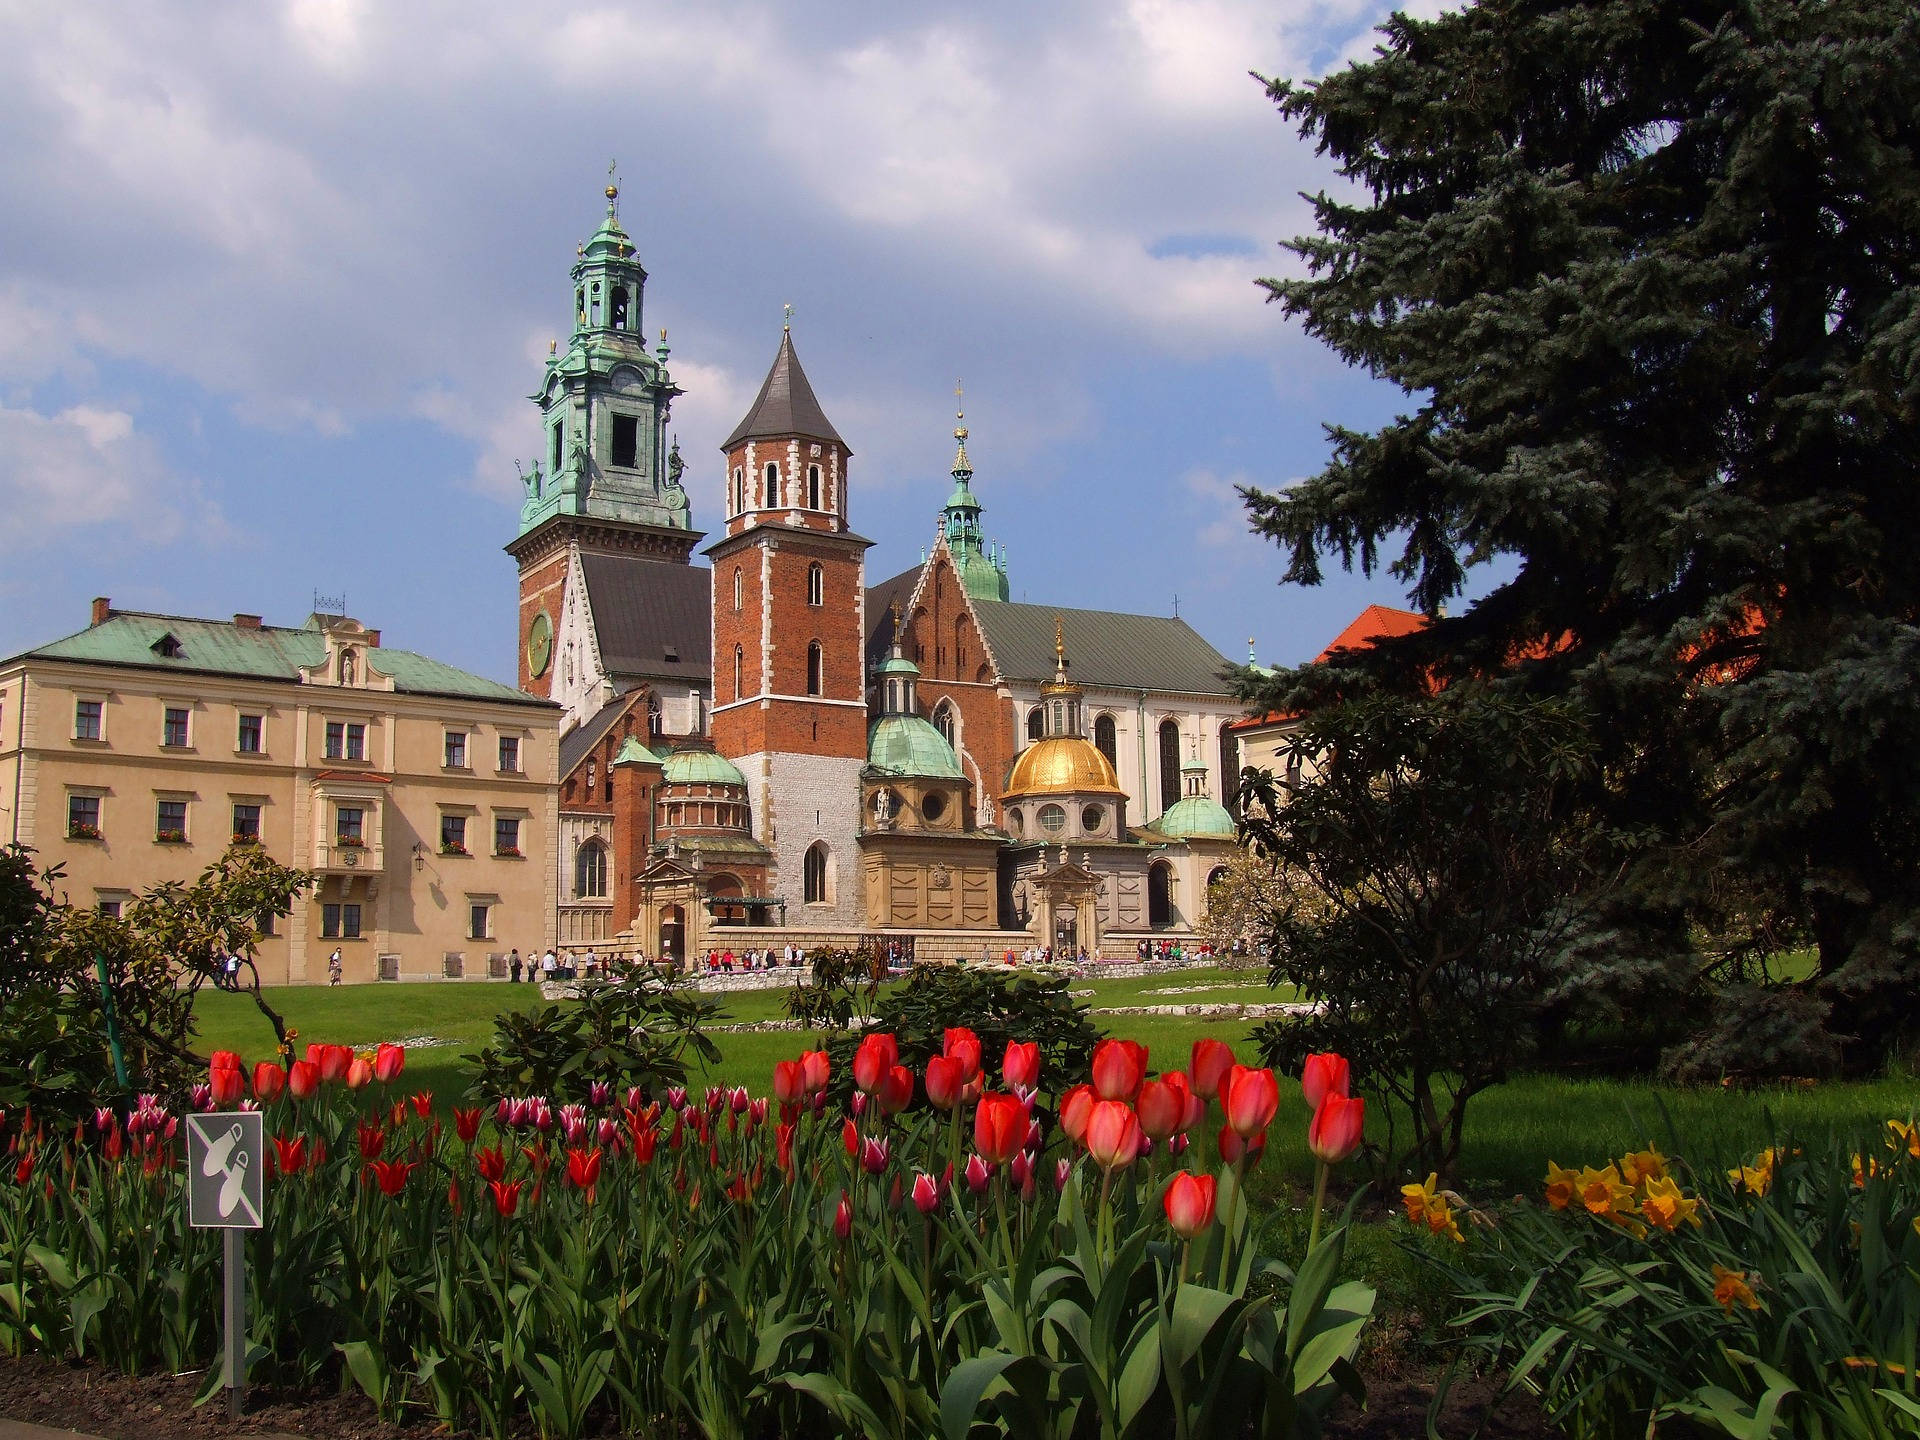 Kraków's most interesting historical monuments